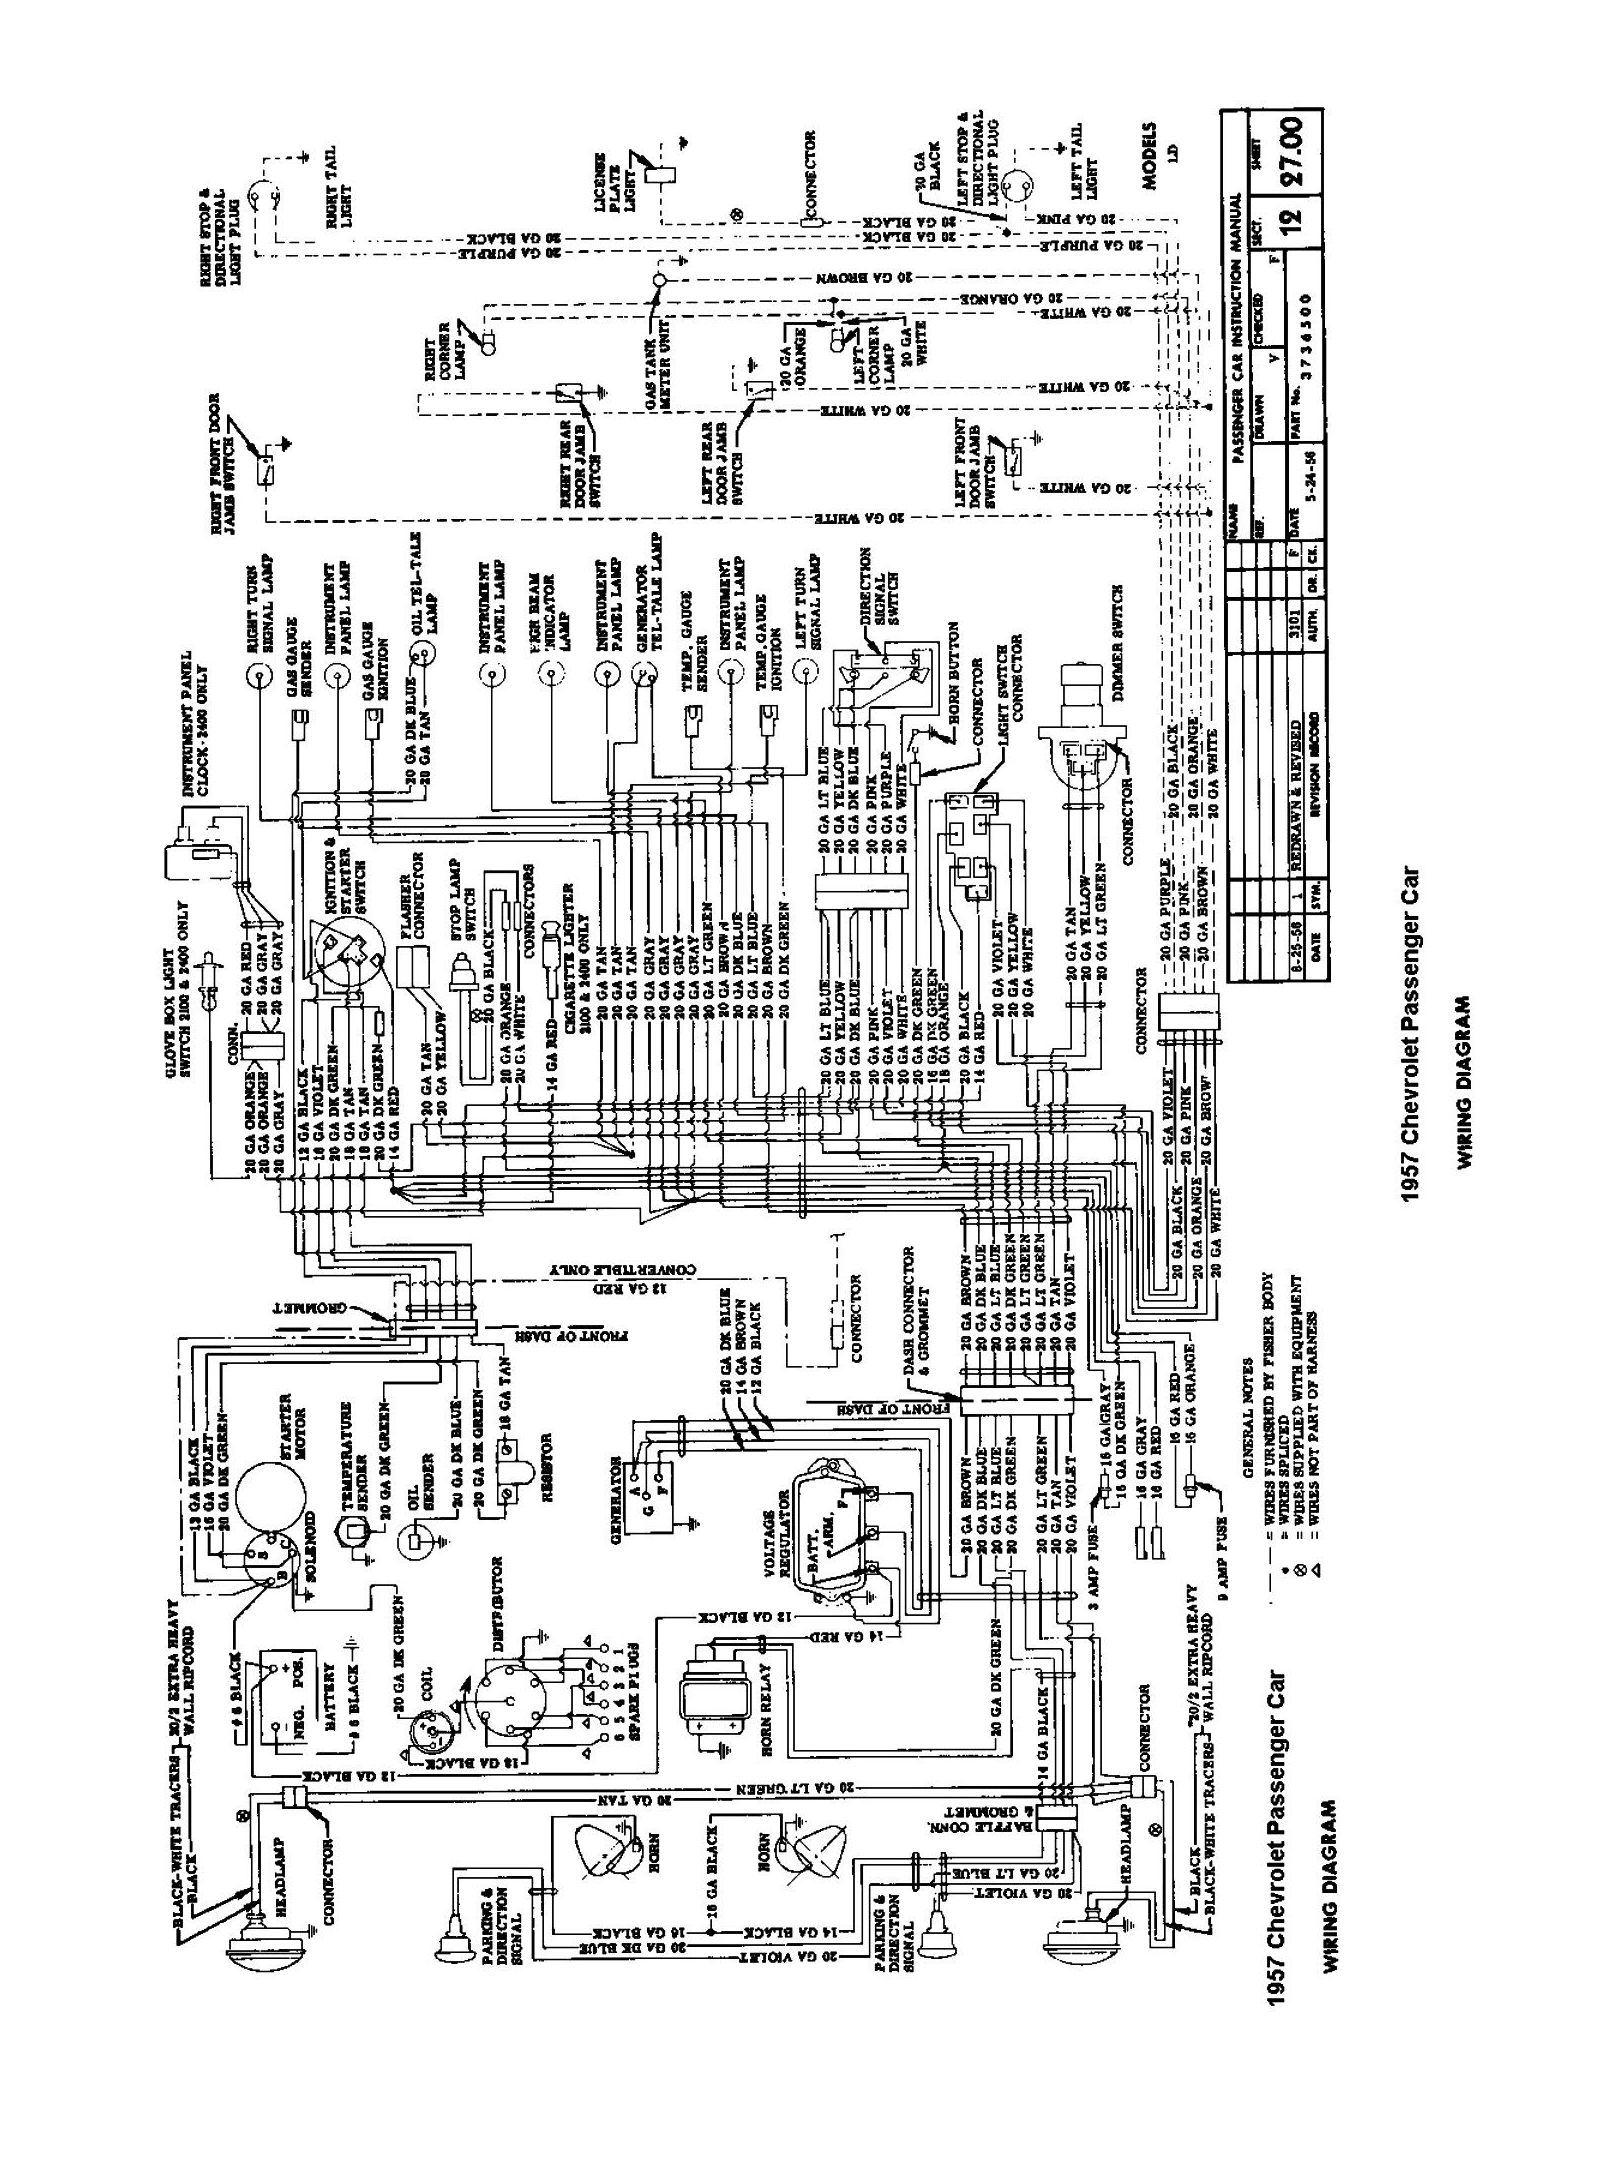 57 Chevy wiring diagram | 1957 chevrolet, Diagram, ChevroletPinterest